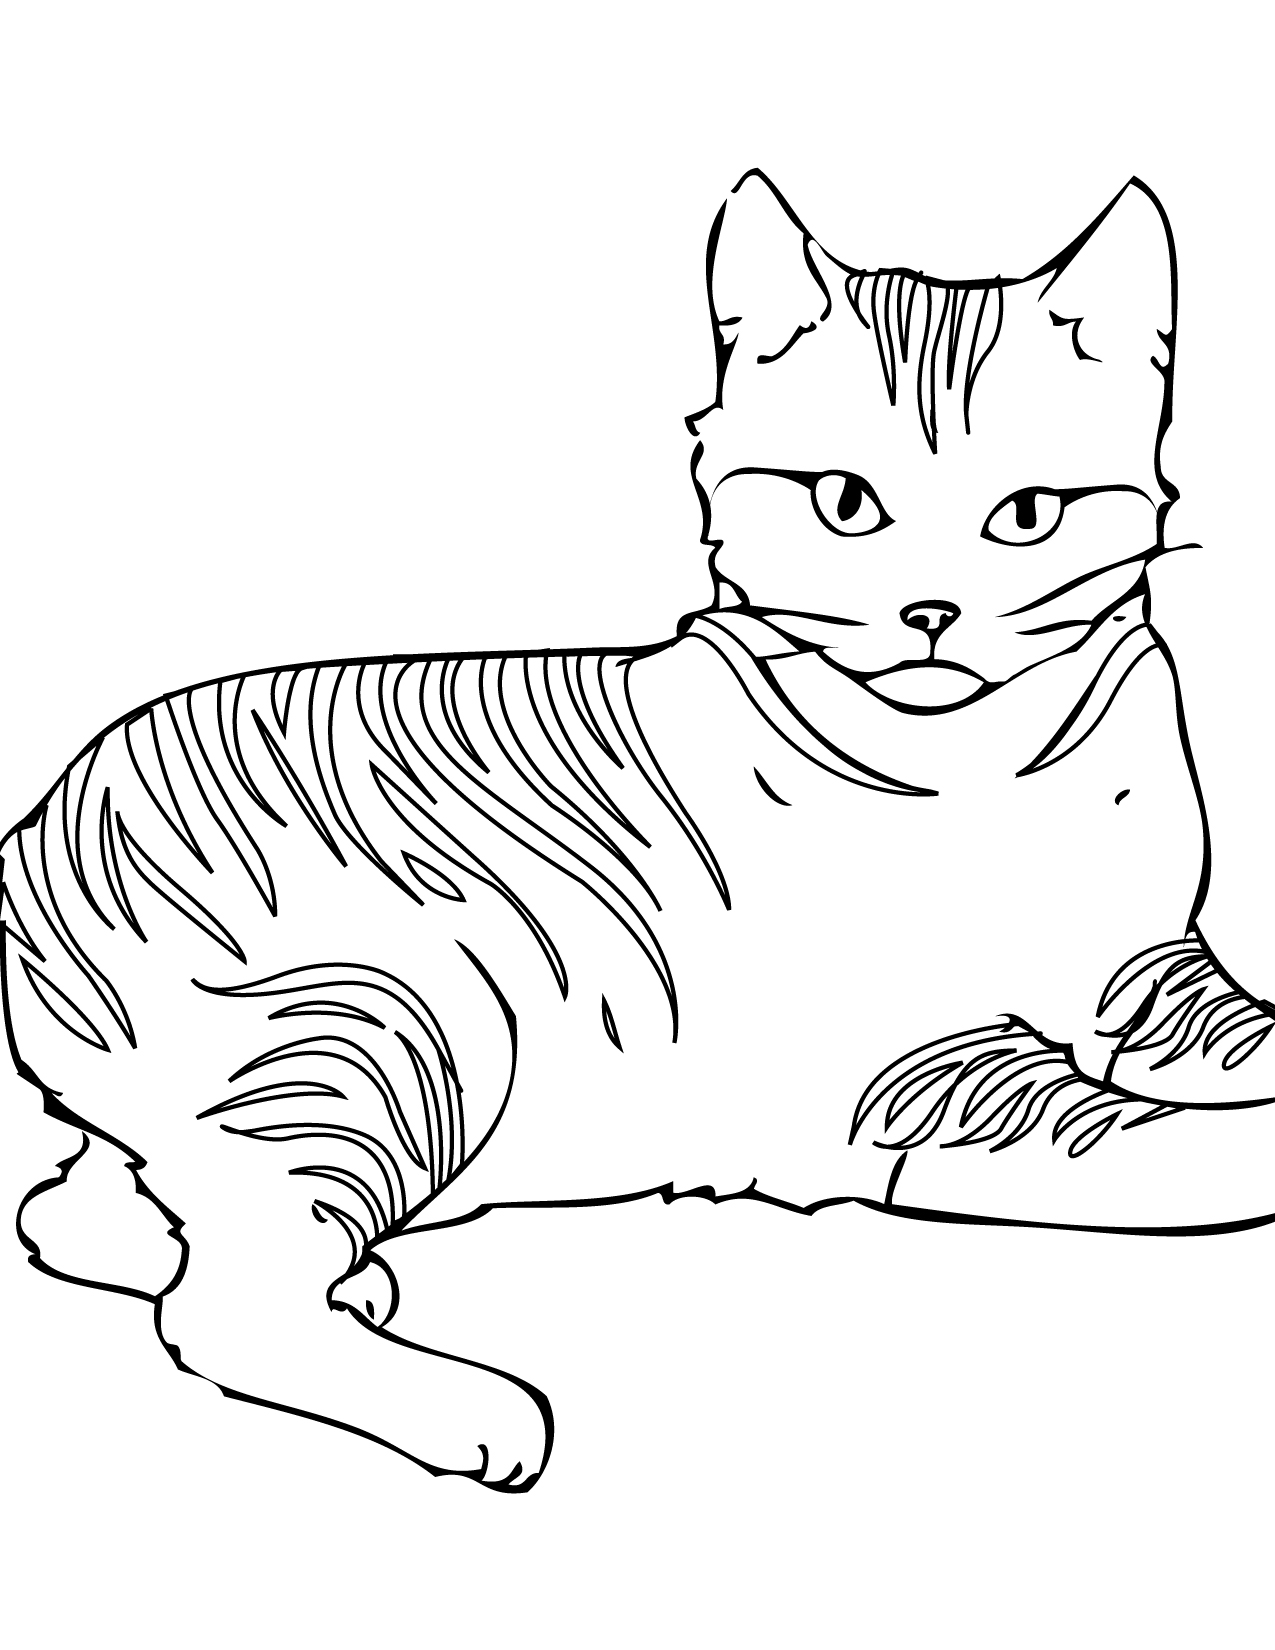 coloring pictures cat free printable cat coloring pages for kids coloring pictures cat